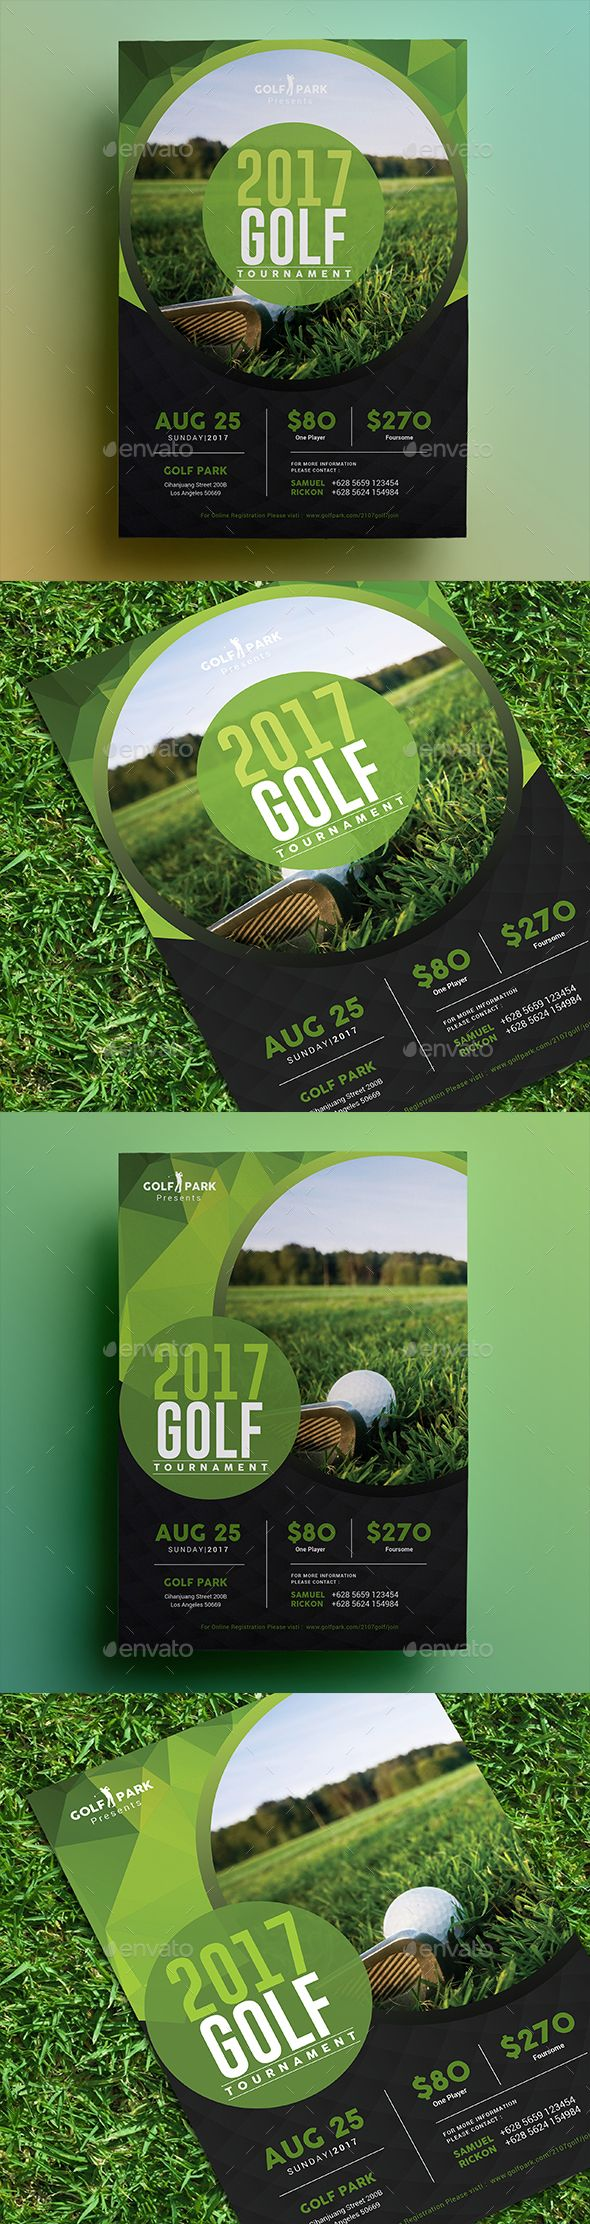 Golf Tournament #Flyer 02 - Sports #Events Download here: https://graphicriver.net/item/golf-tournament-flyer-02/19518224?ref=alena994